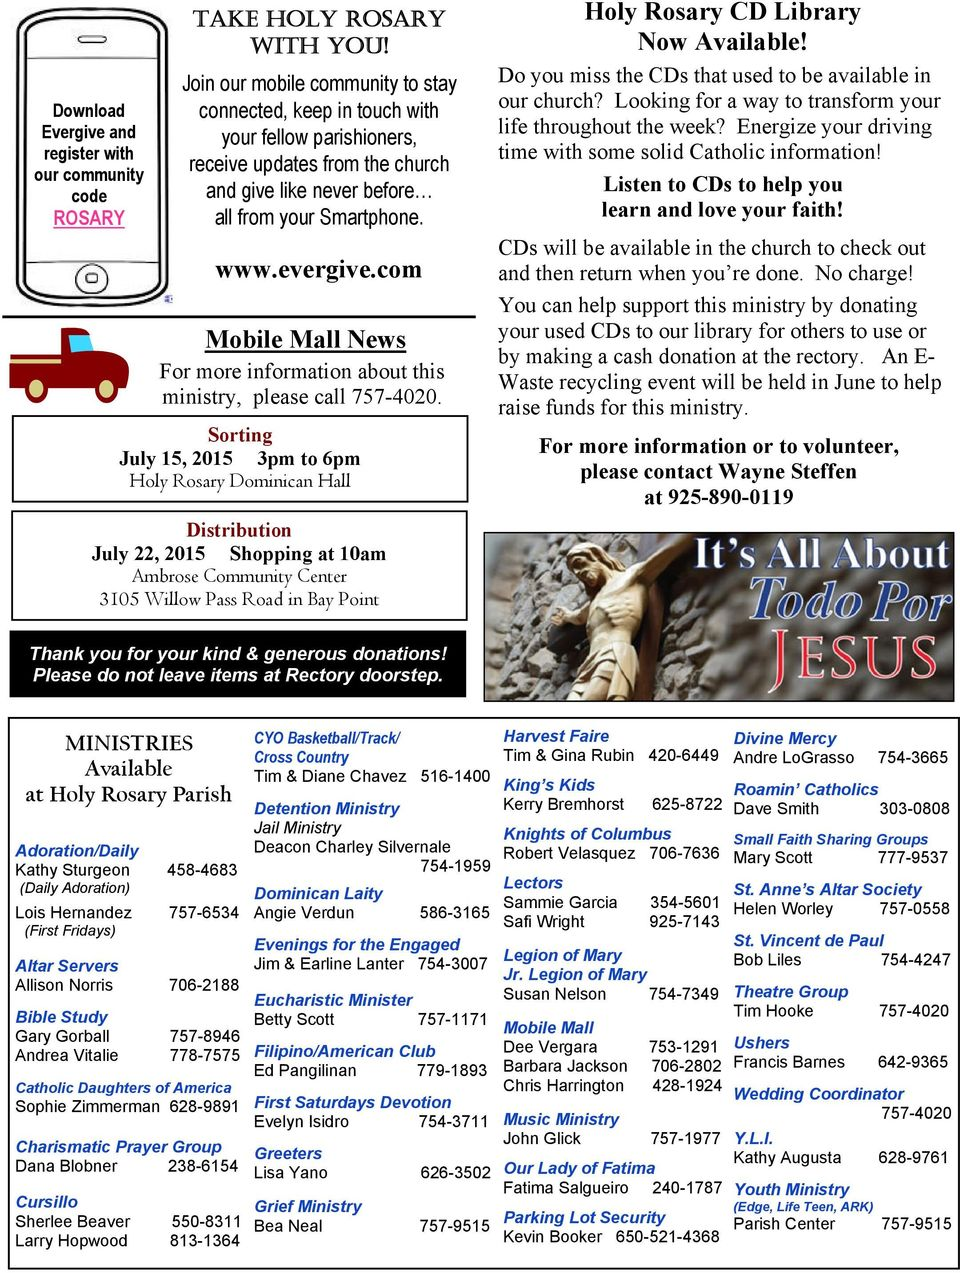 com Mobile Mall News For more information about this ministry, please call 757-4020.